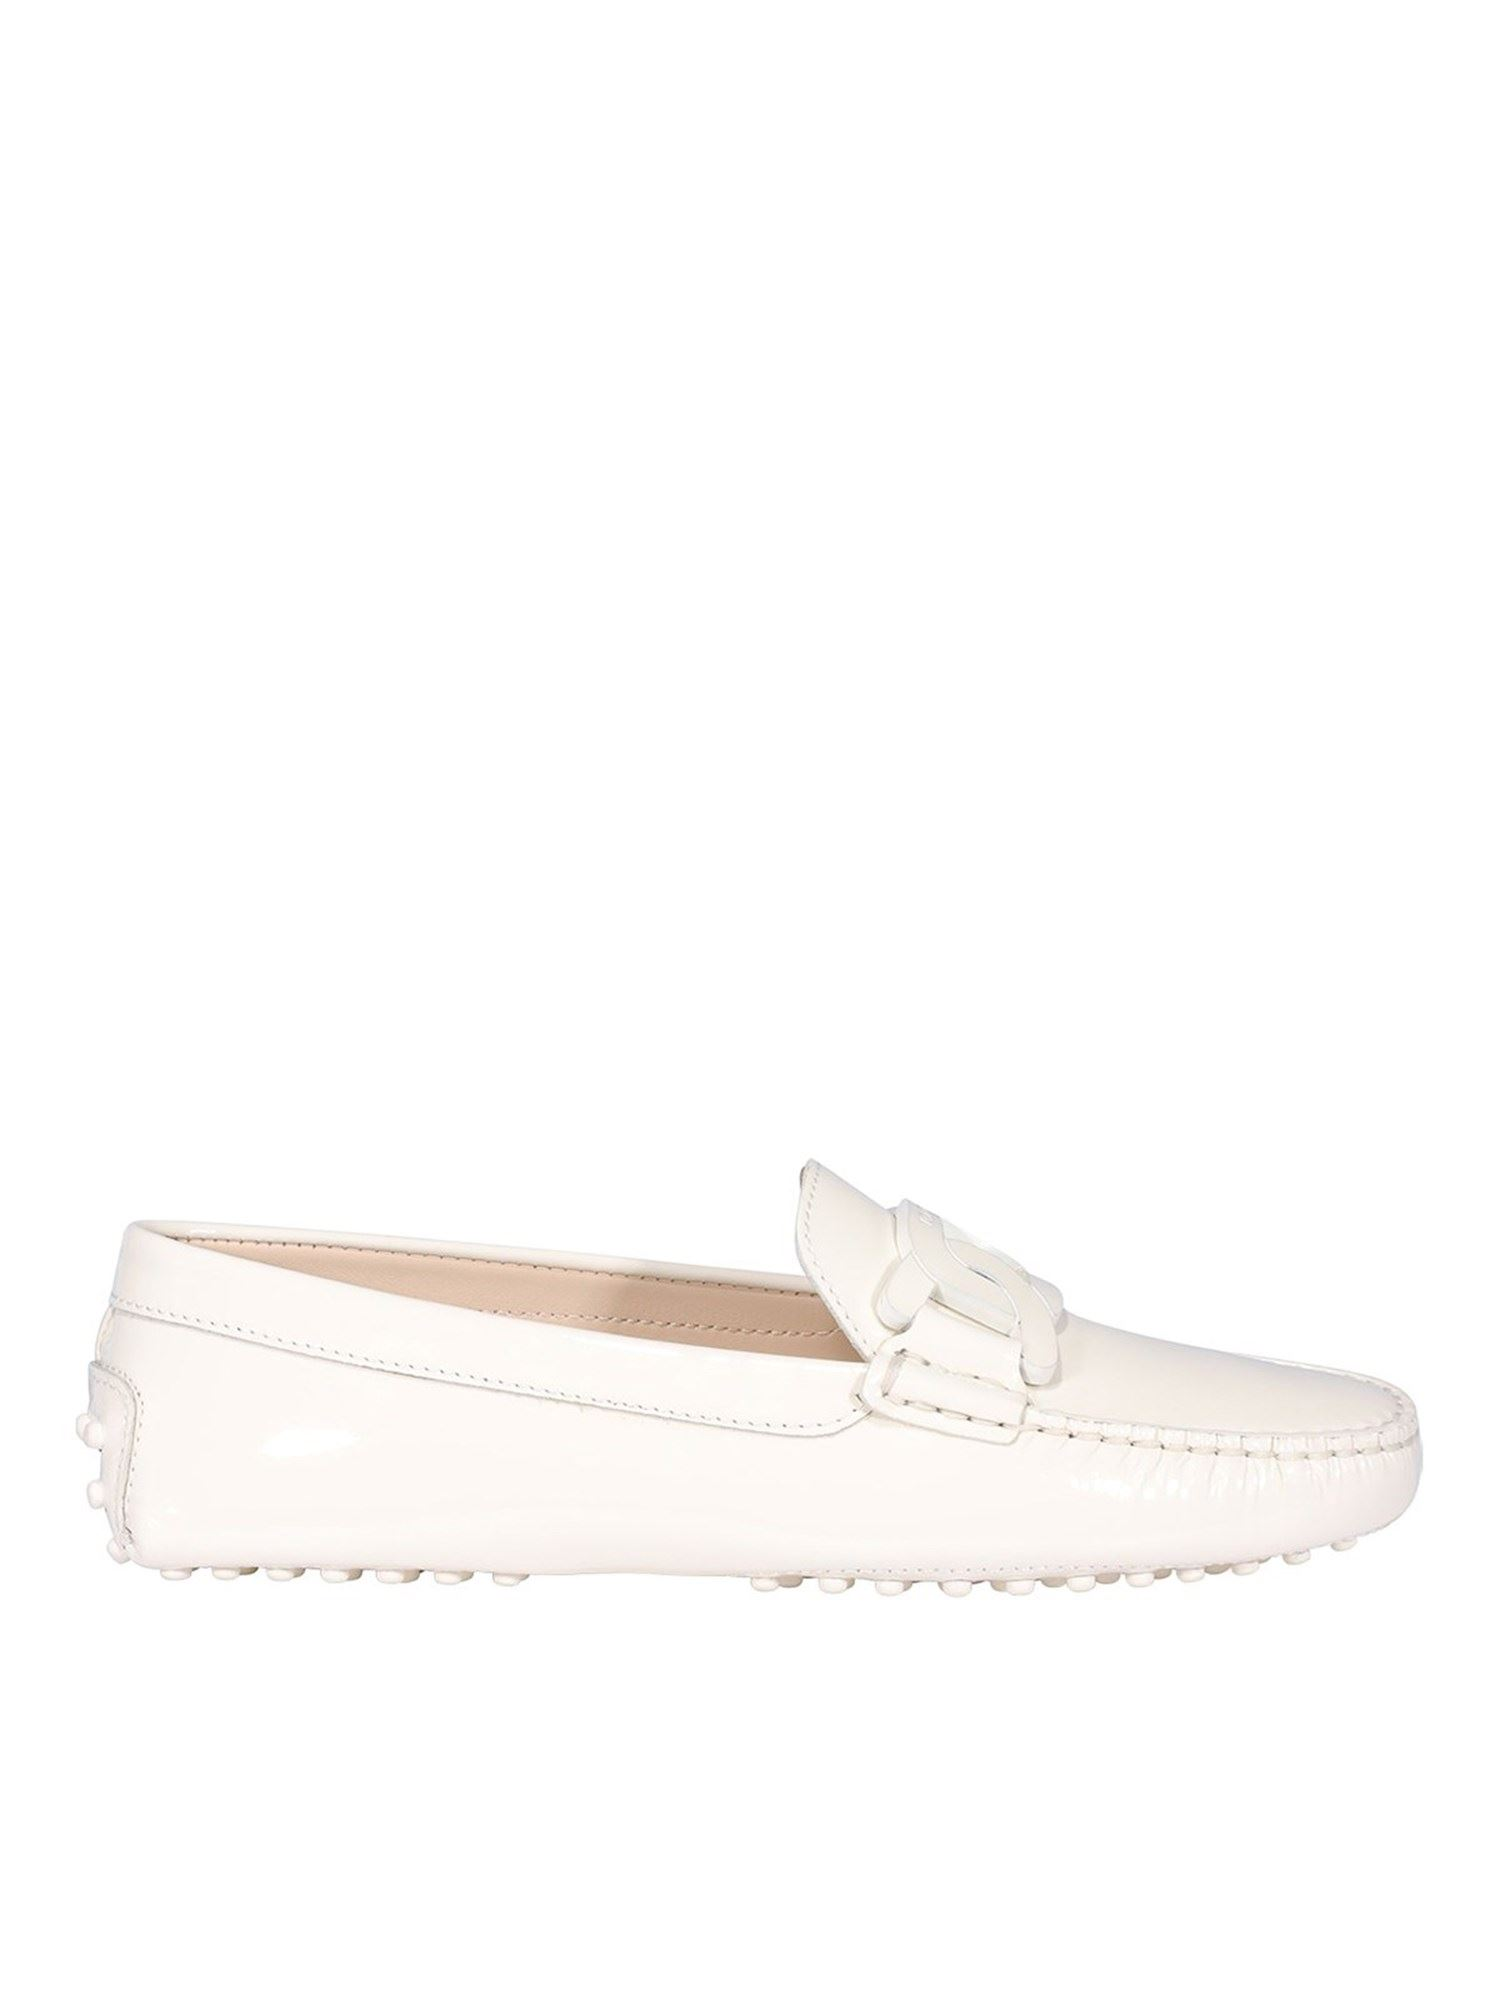 Tod's CHAIN TRIM PATENT LEATHER LOAFERS IN WHITE